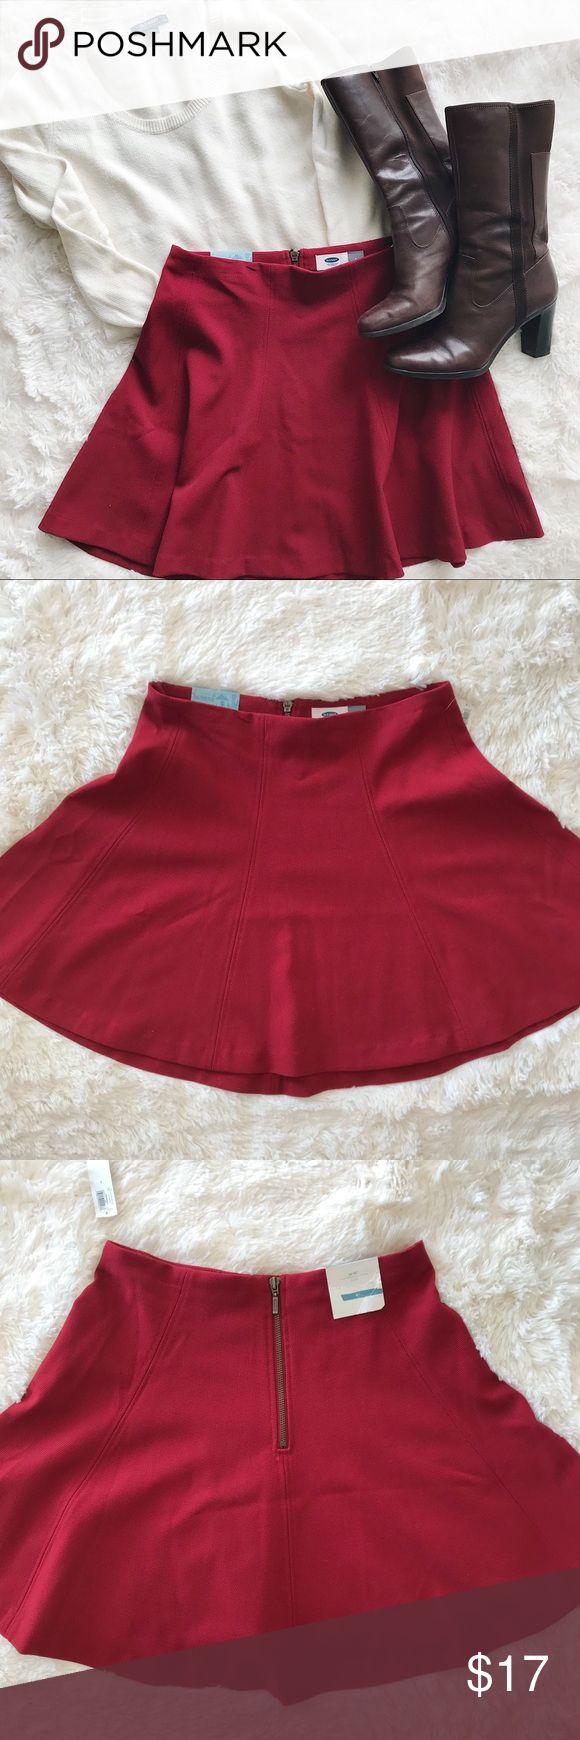 """NWT Old Navy red skater skirt NWT Old Navy red skater skirt Size 4 exposed back zip Measurements flat:   Waist 14.5""""   Length 17"""" Old Navy Skirts"""